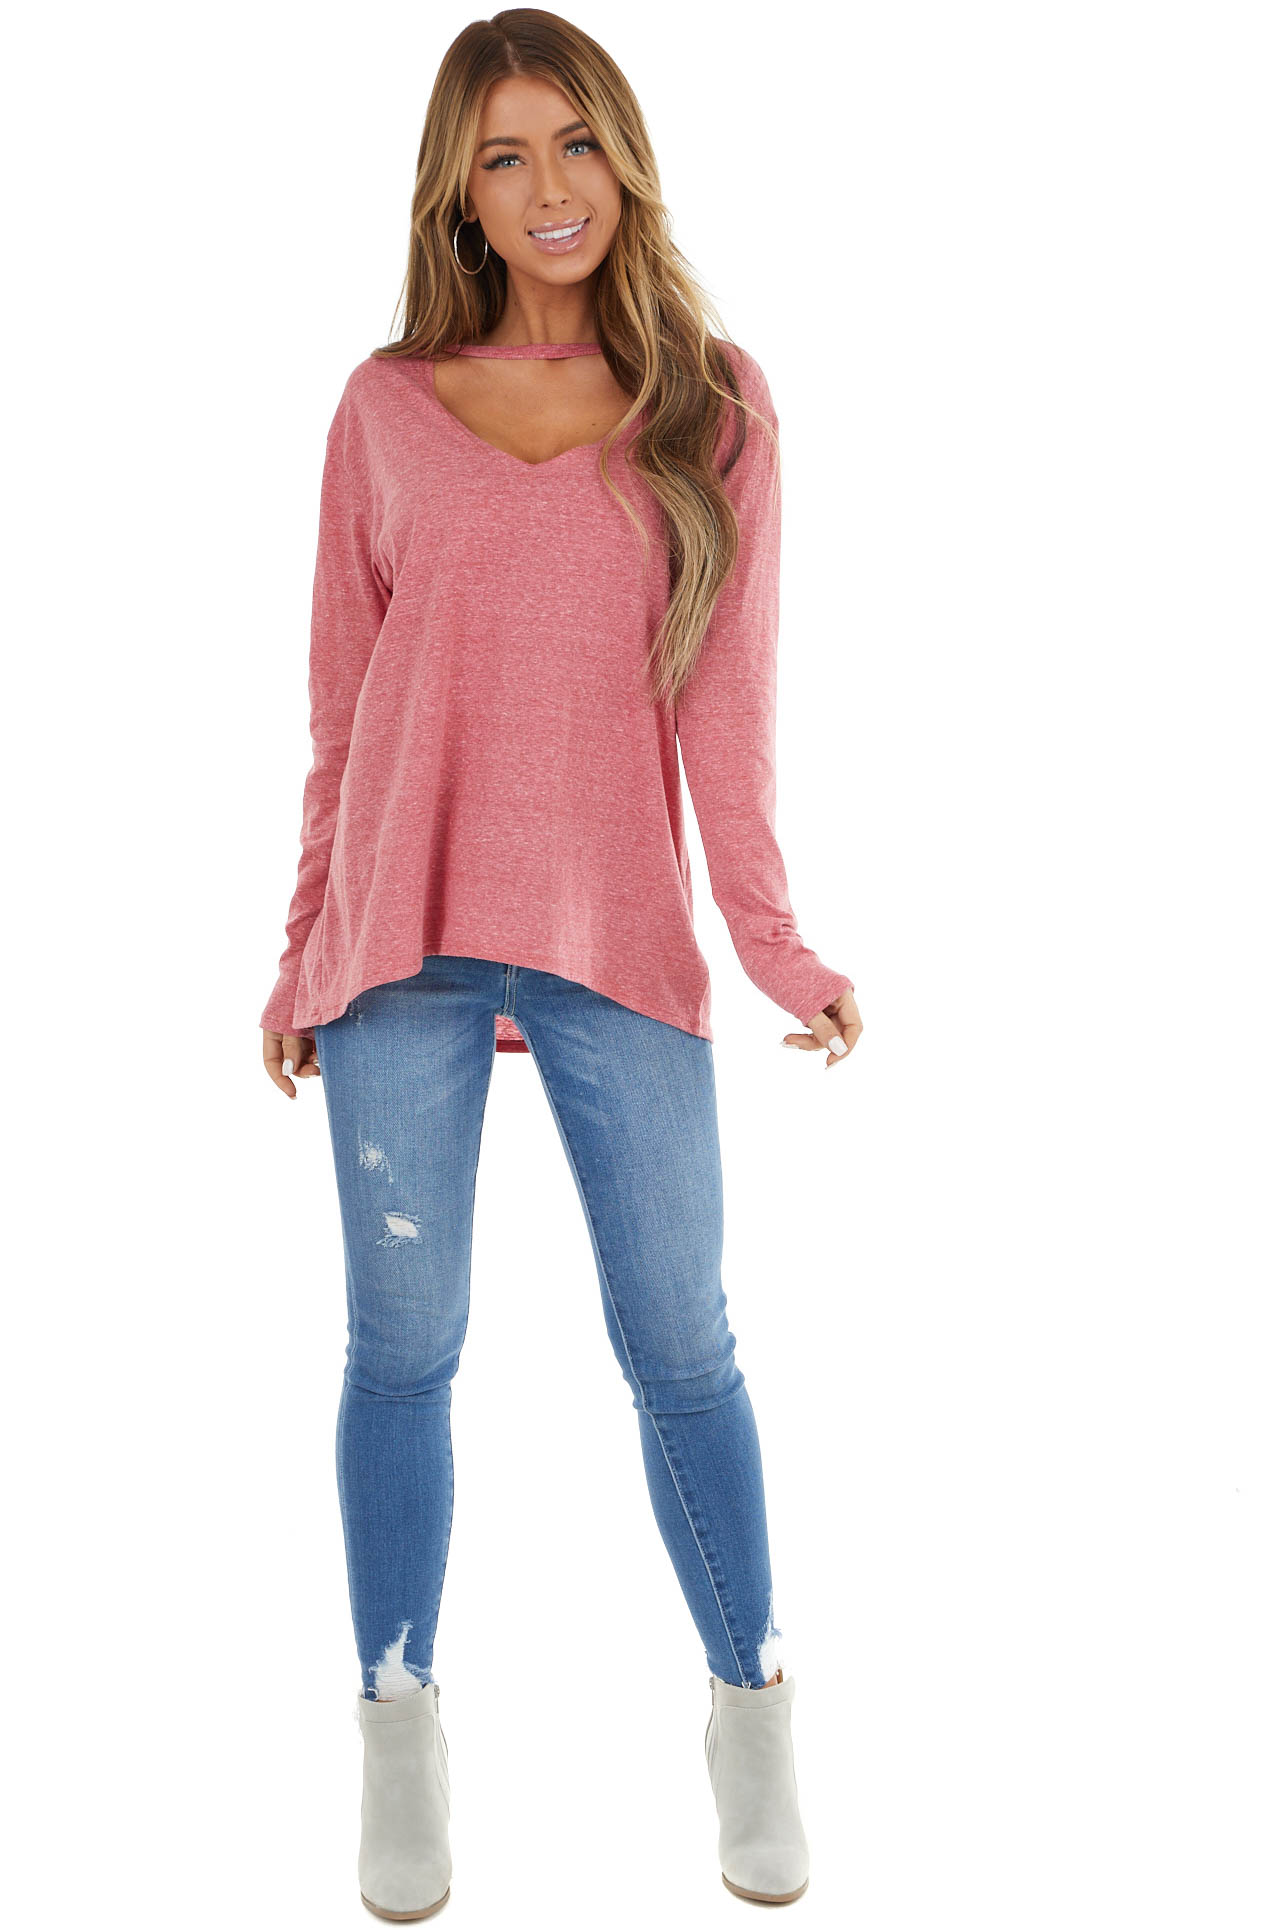 Heathered Lipstick Red Long Sleeve Top with V Cutout Detail